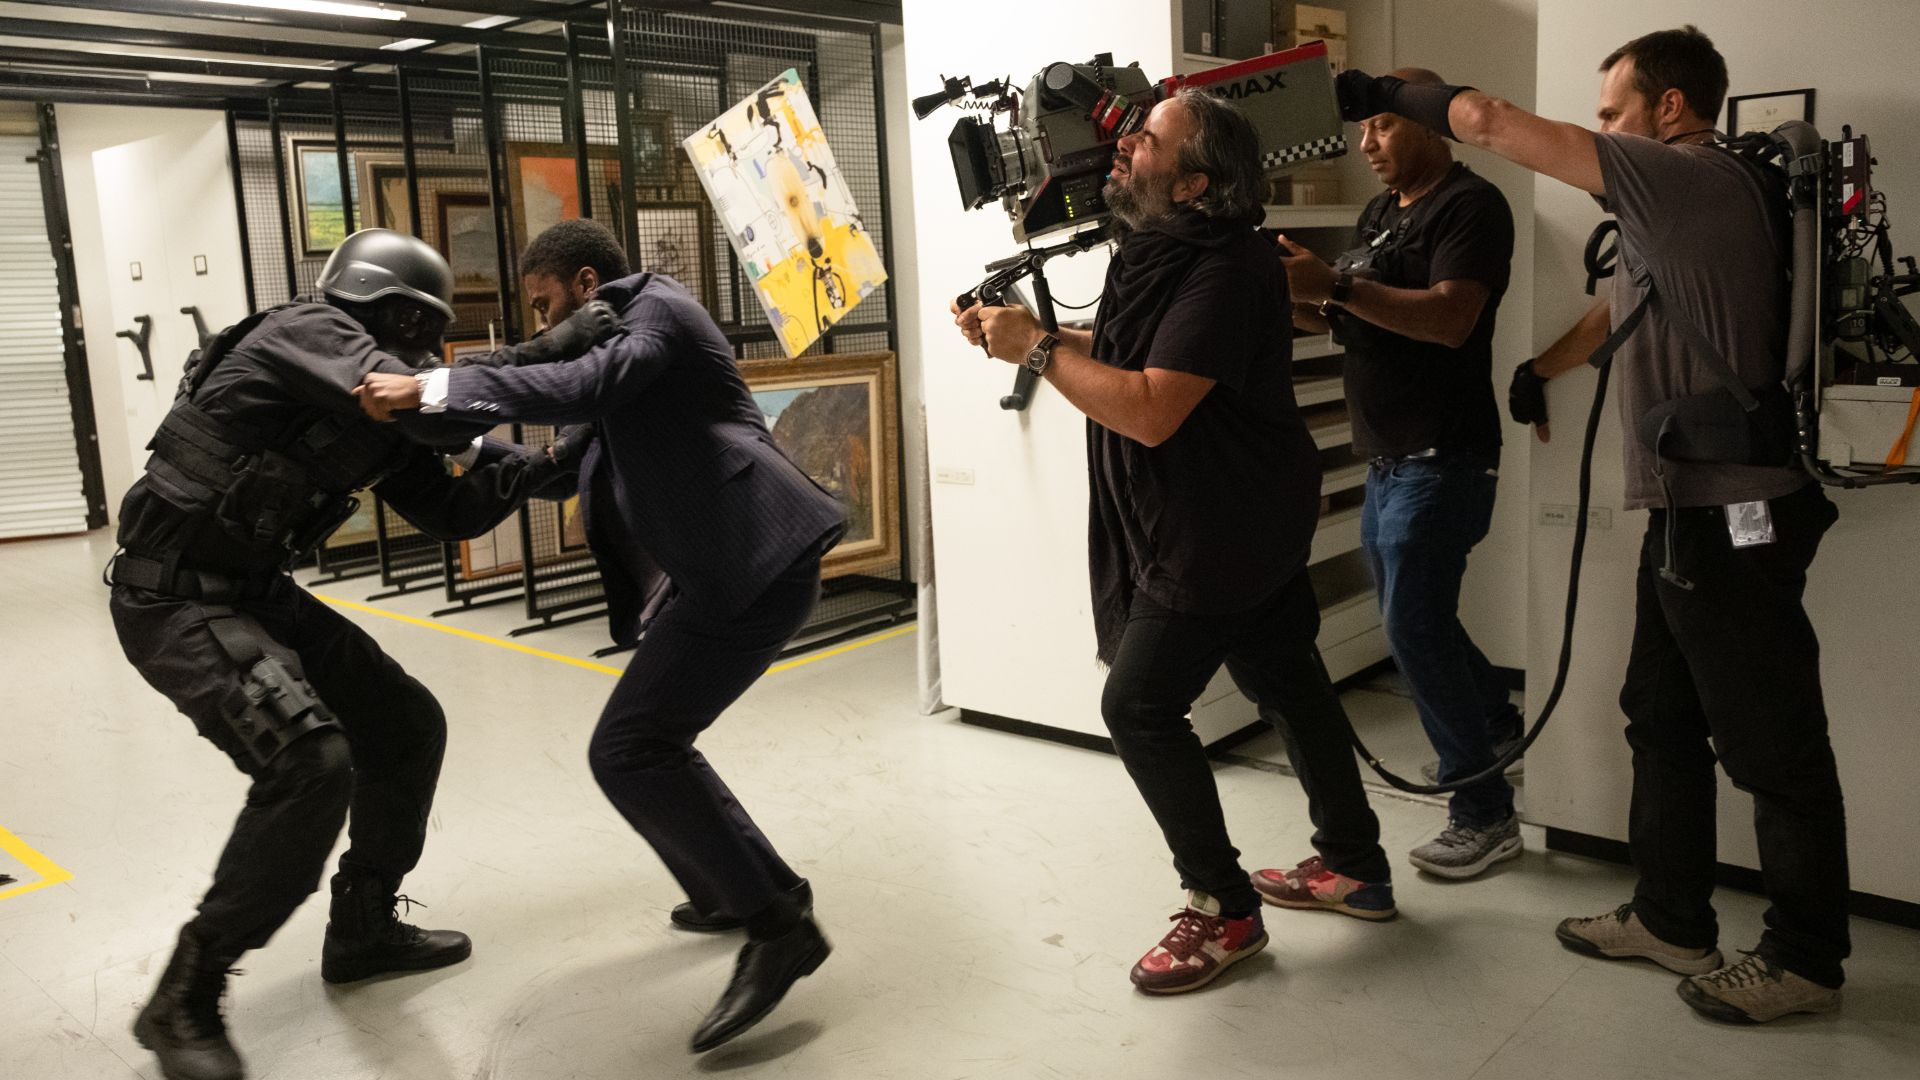 Tenet: Christopher Nolan on the complexities of filming time-inverted fighting scenes   GamesRadar+